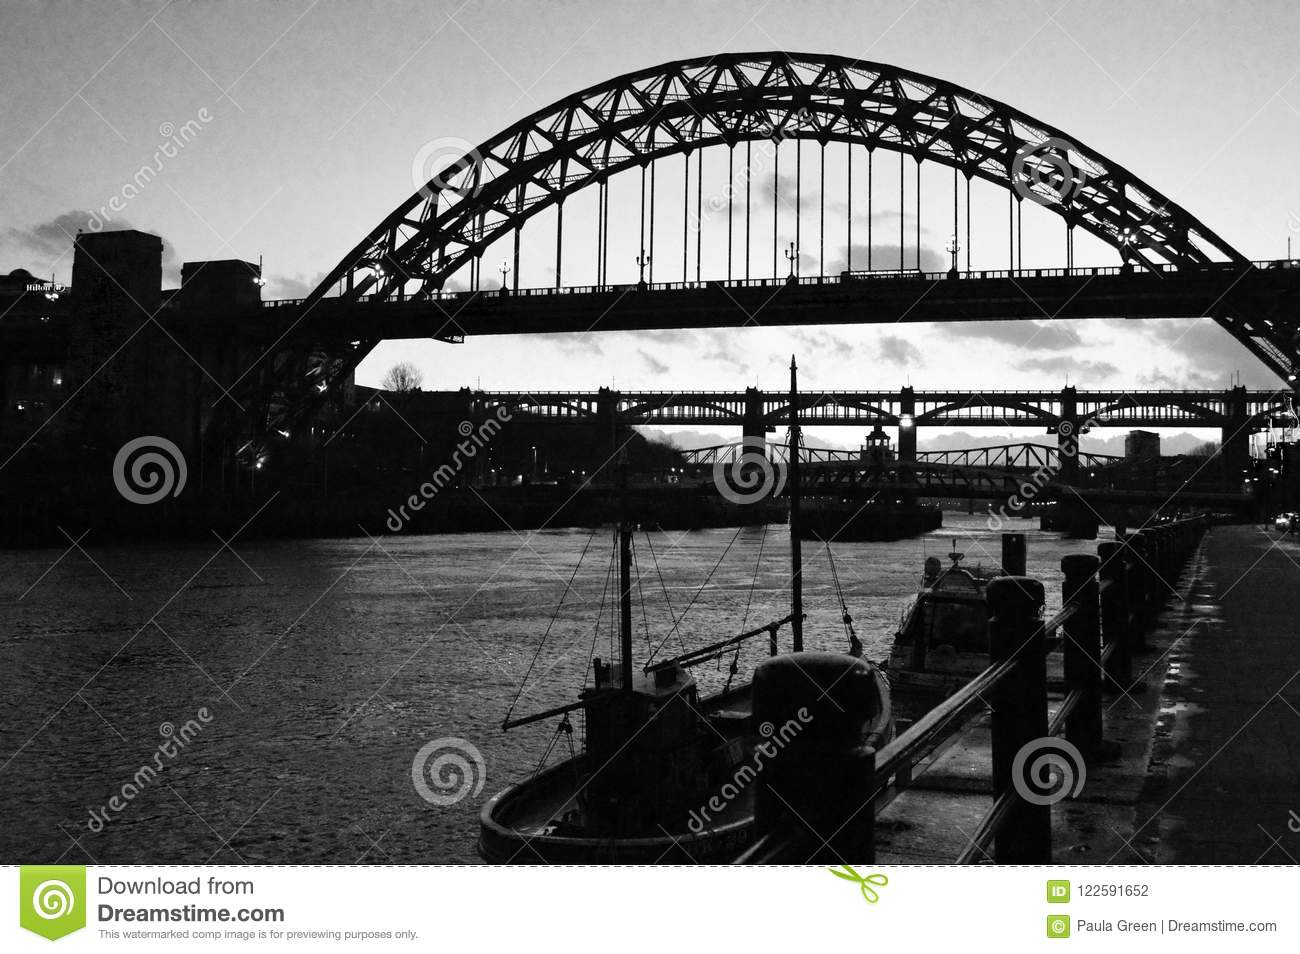 Newcastle upon tyne north east england famous bridges over the river tyne in silhouette and black and white landscape orientation